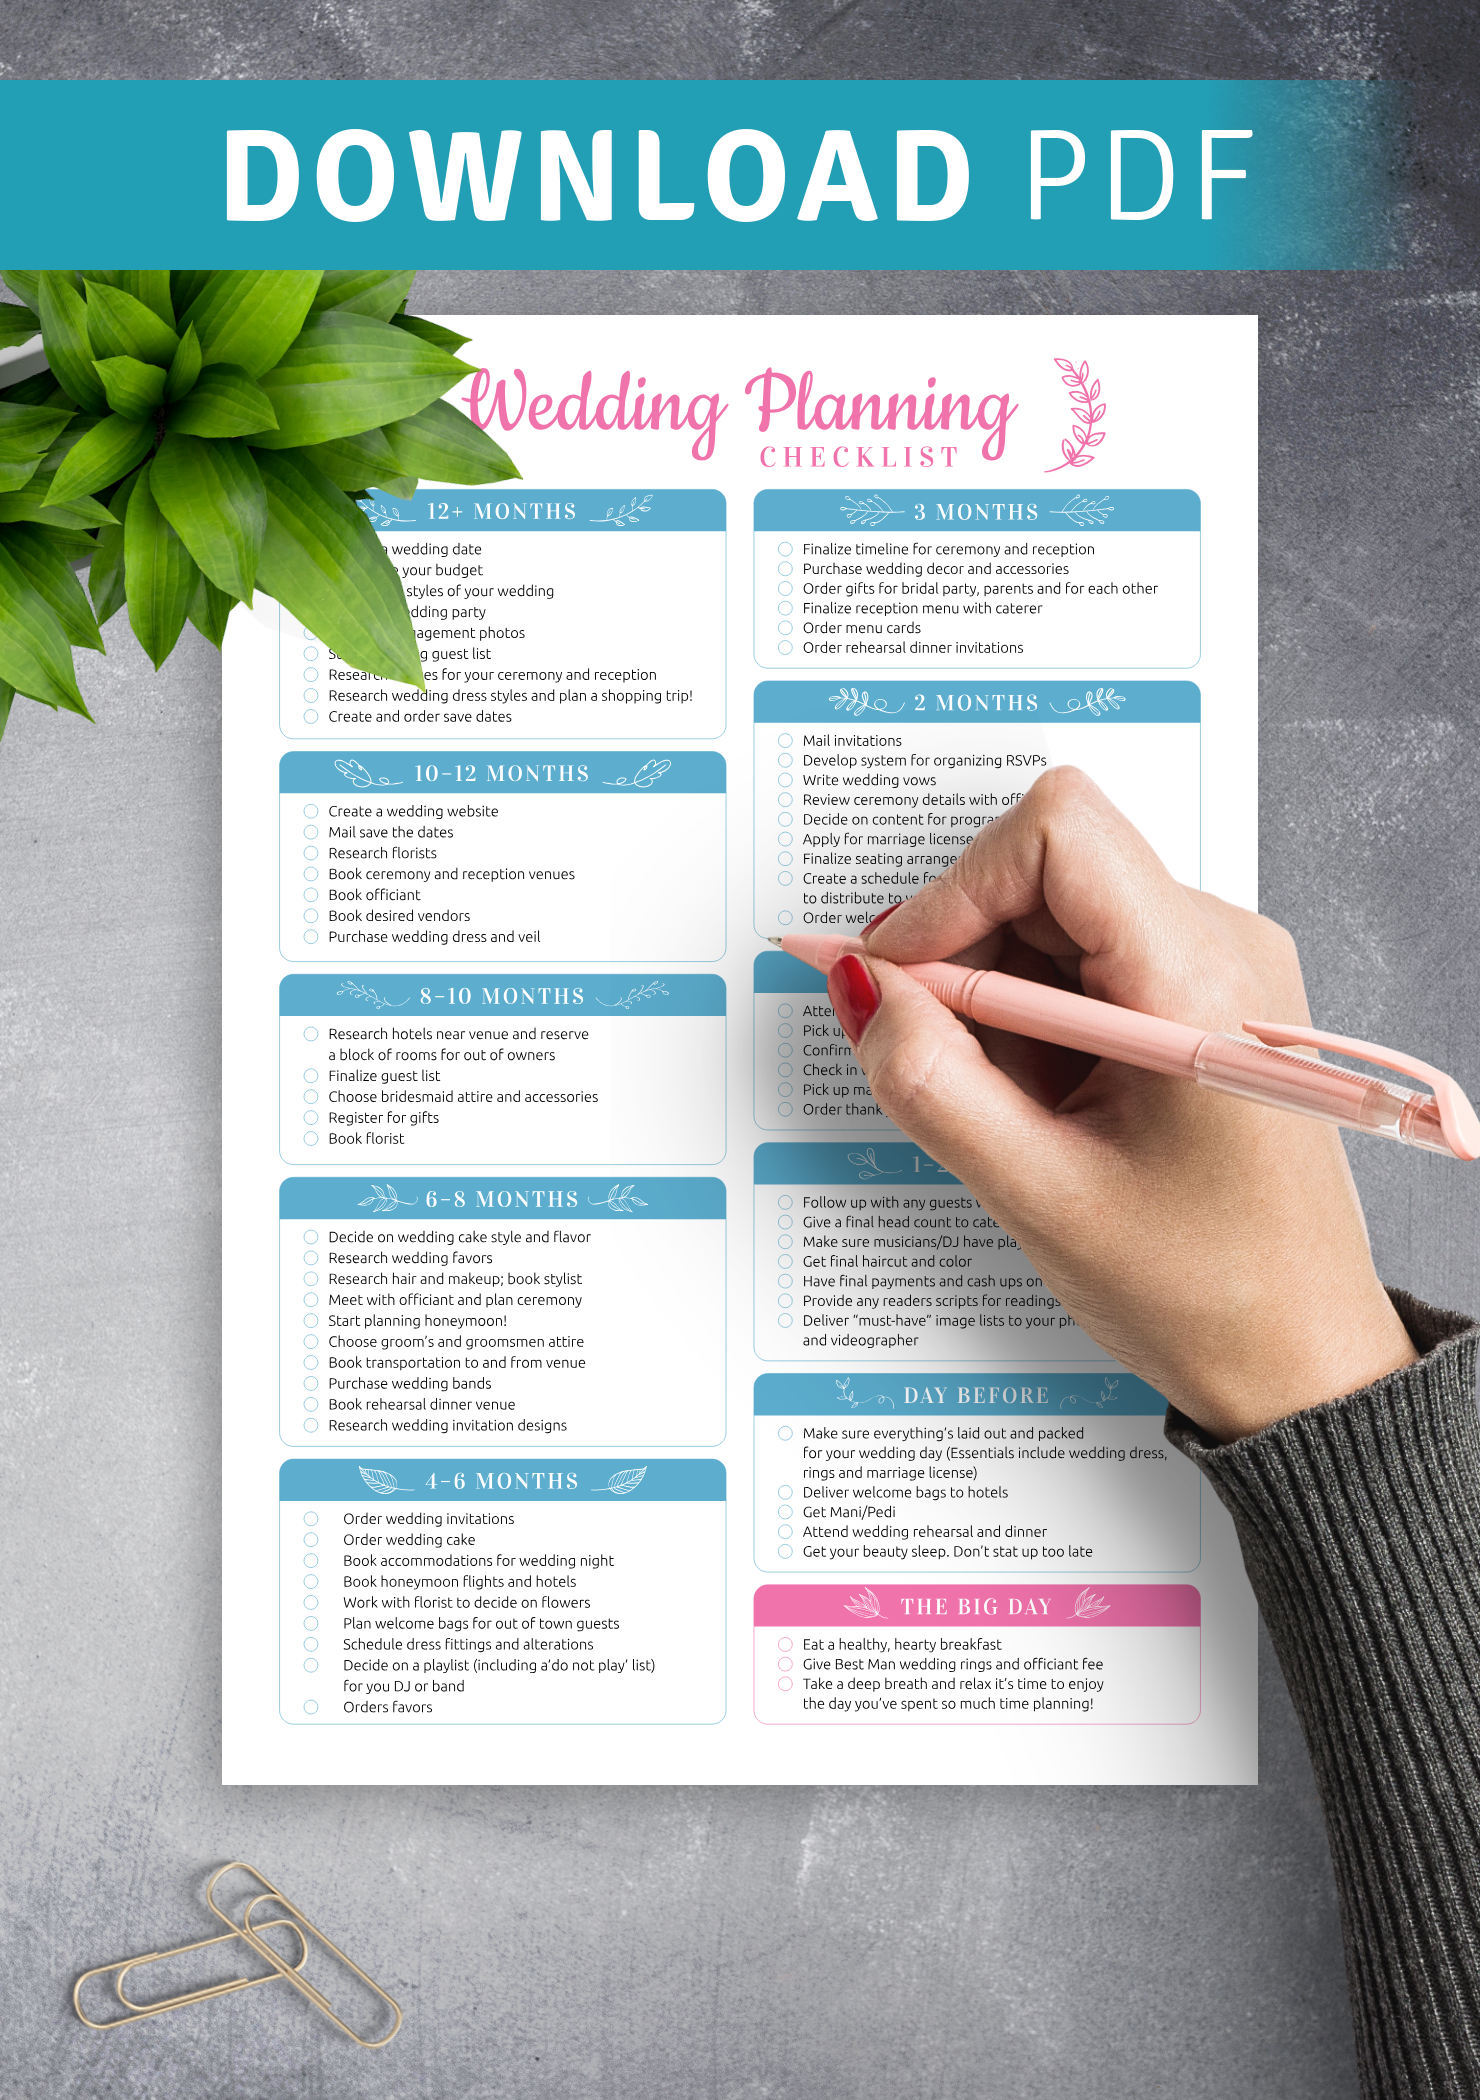 Wedding Planning Checklist Template from onplanners.com